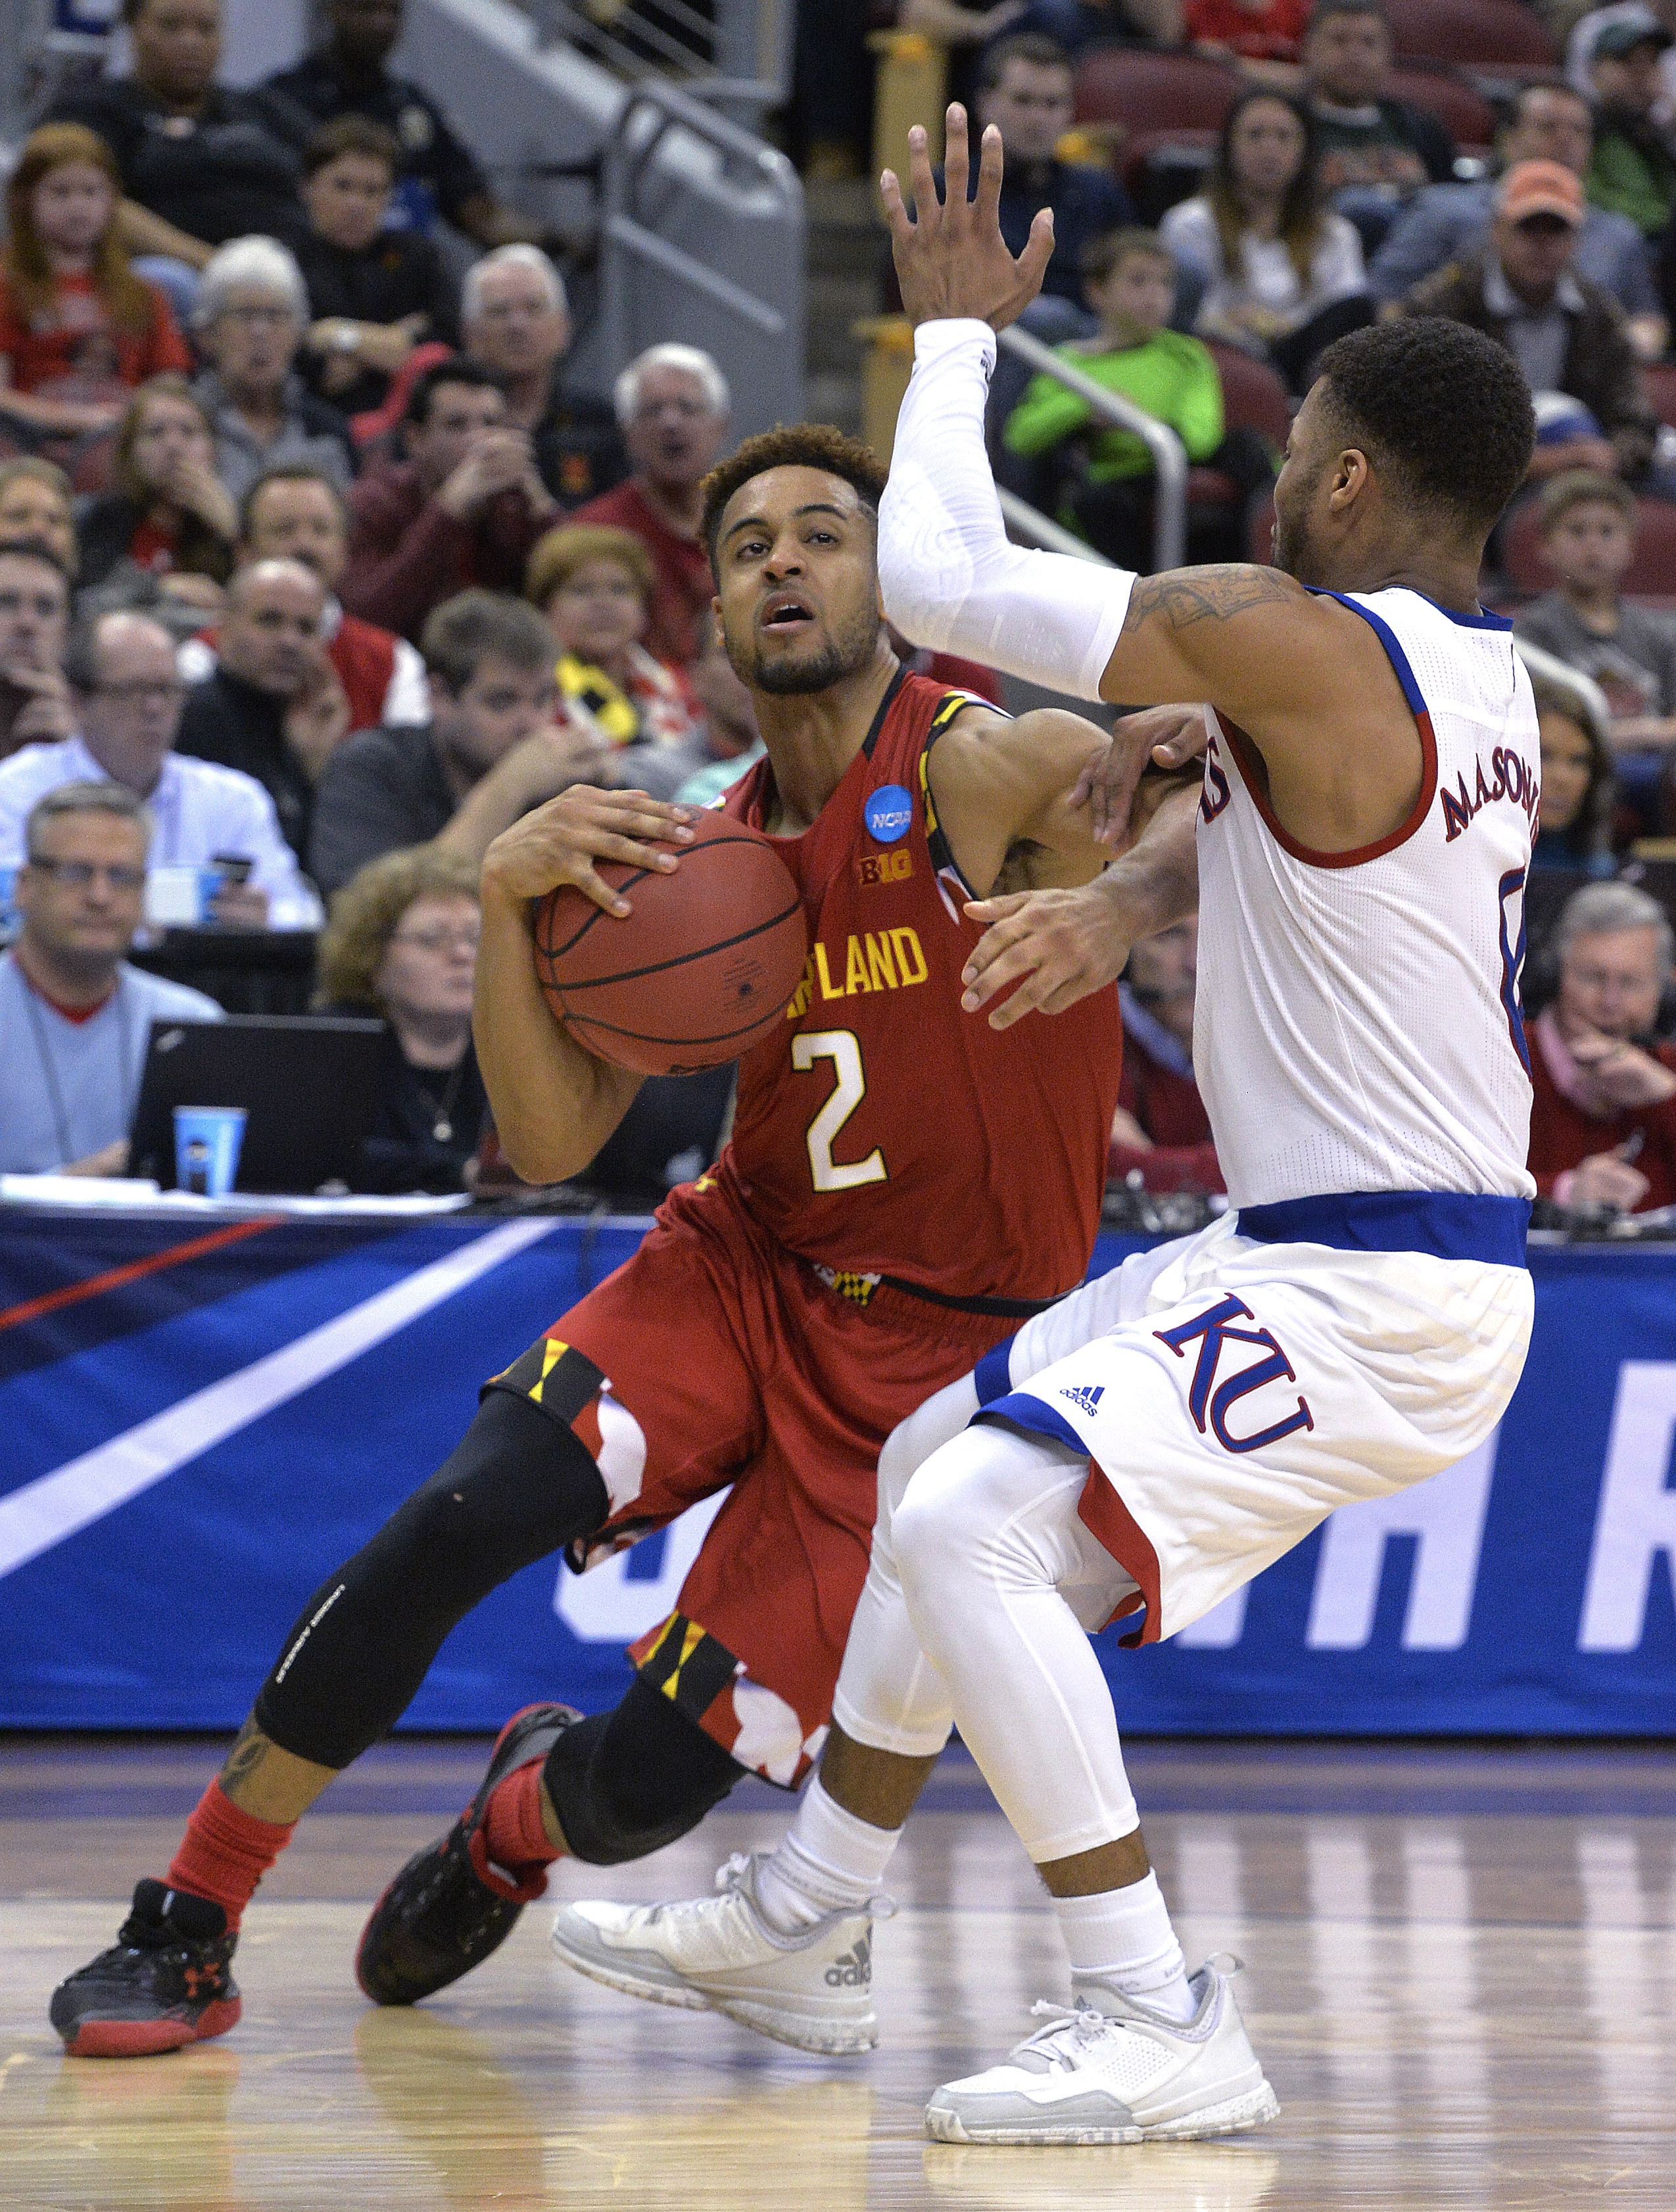 Local teams among richest college basketball programs